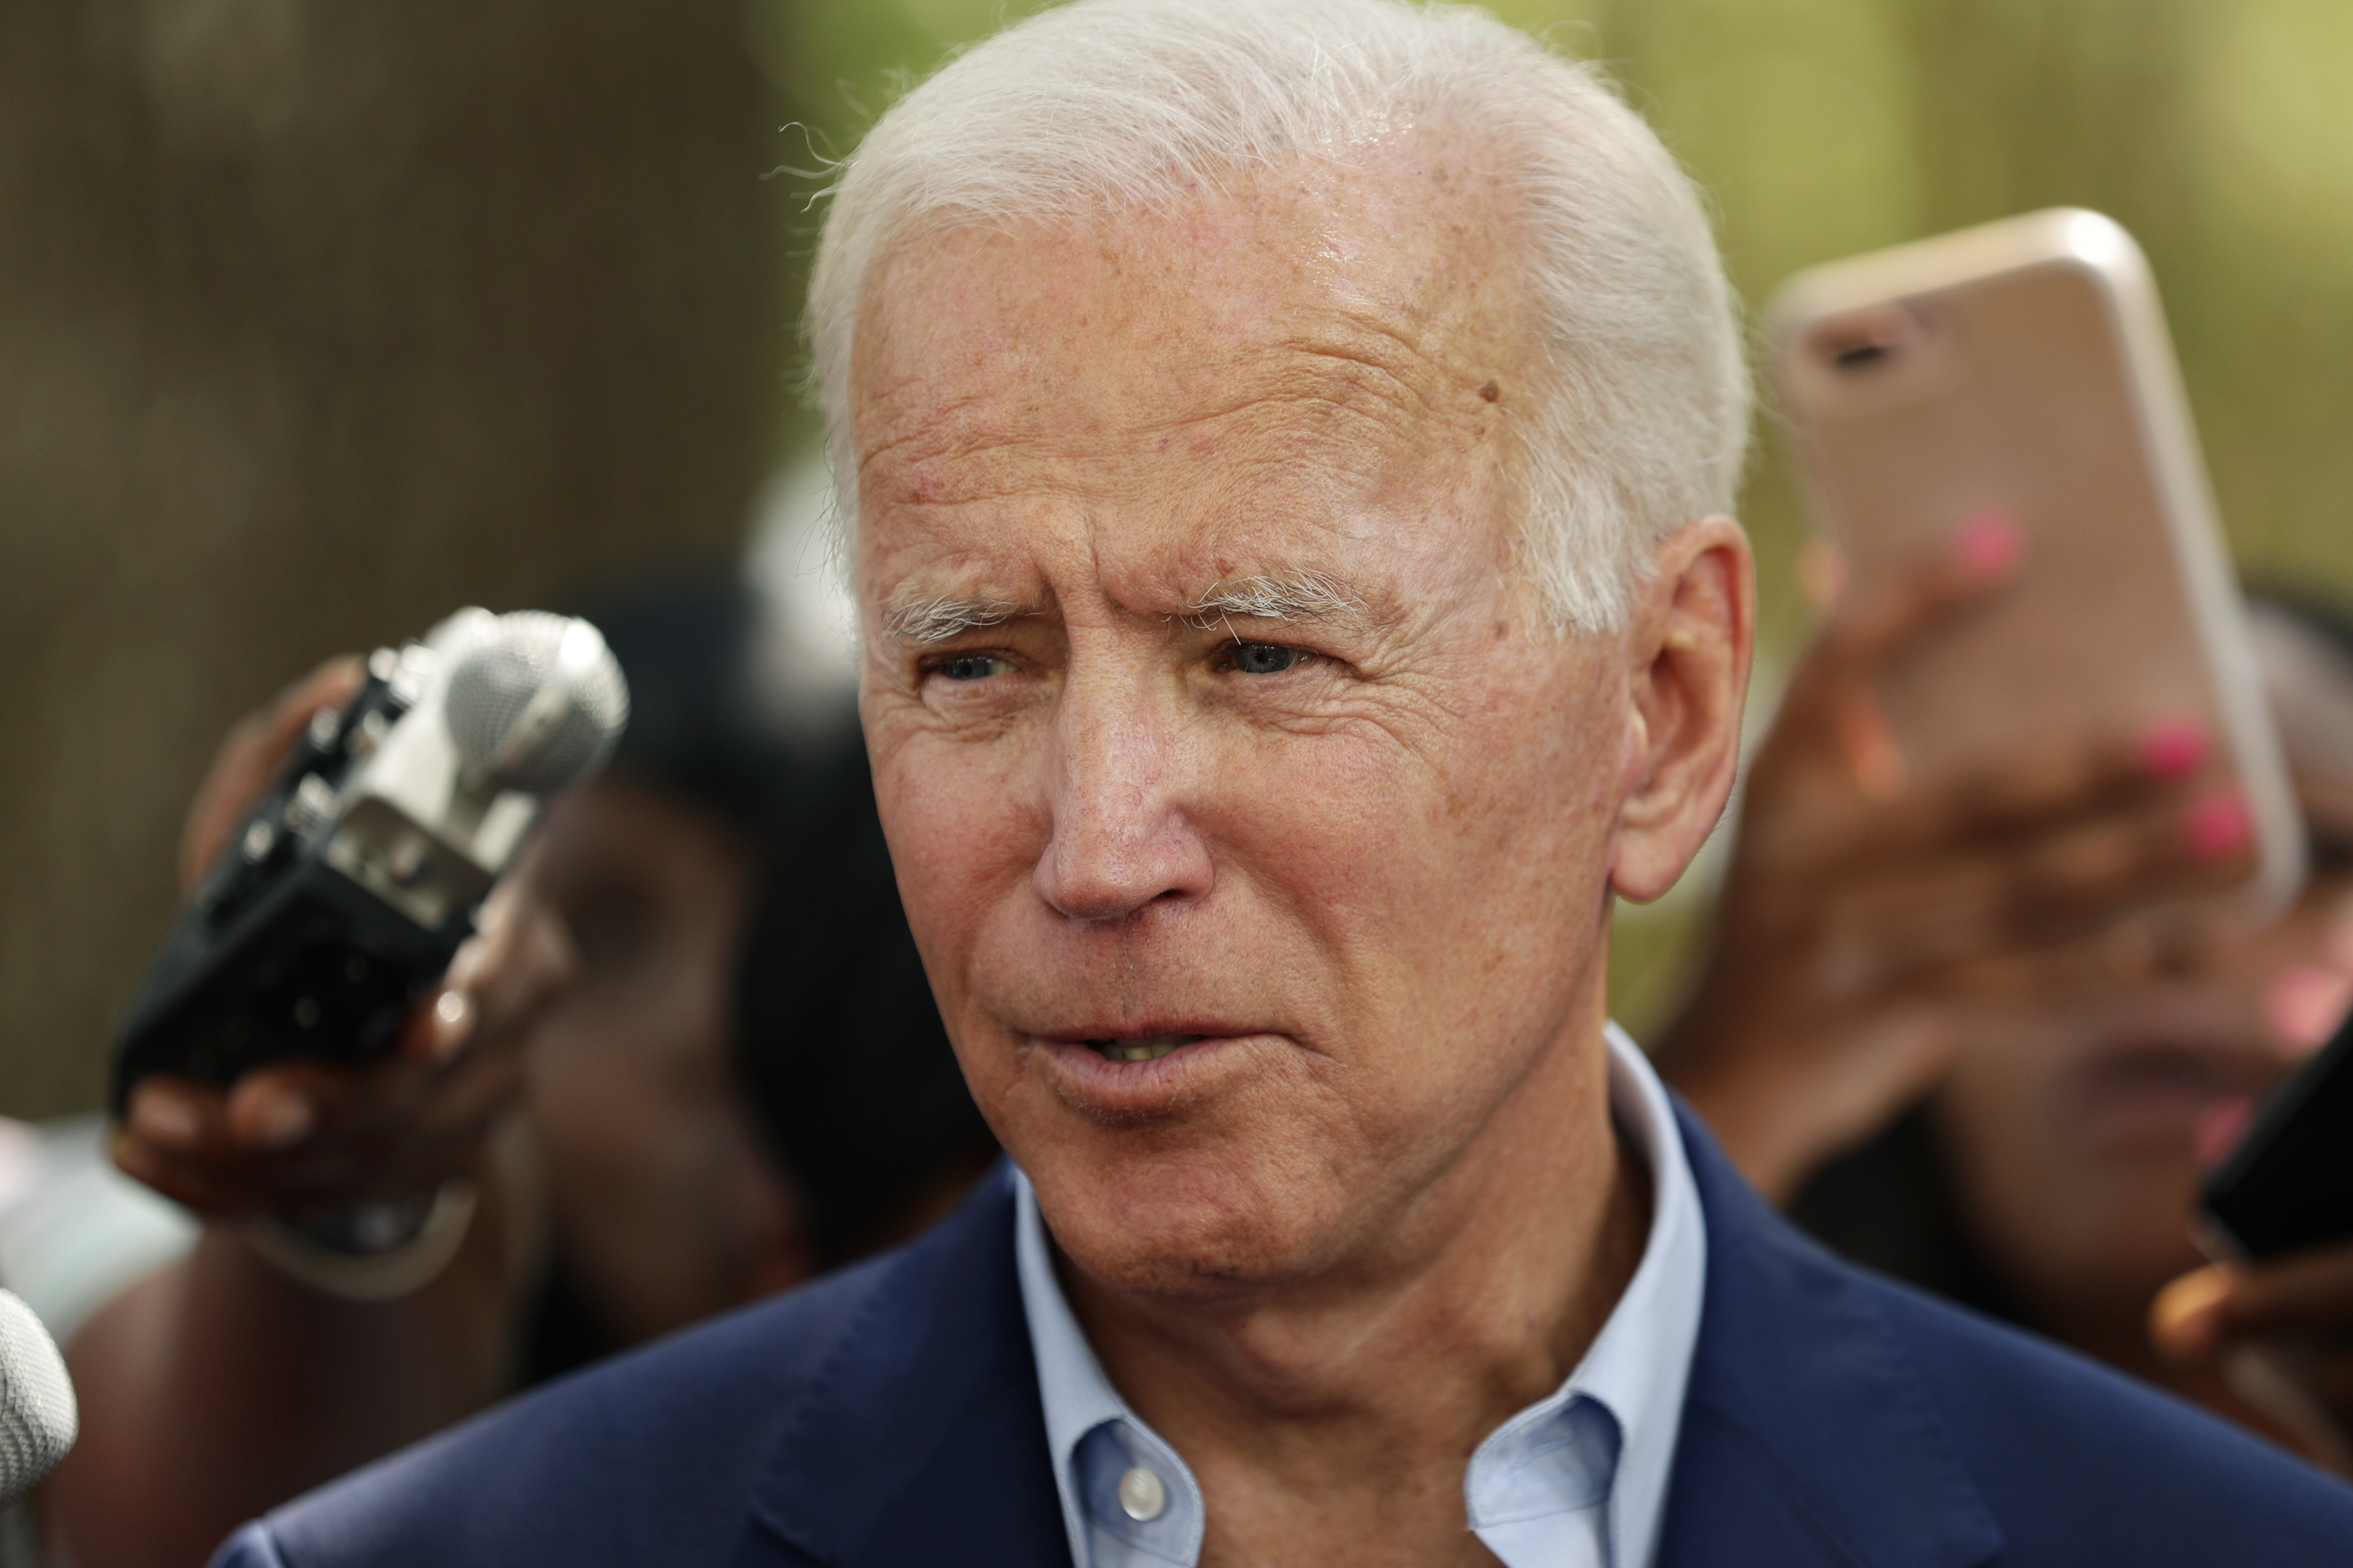 Joe Biden says he will release medical records before primaries